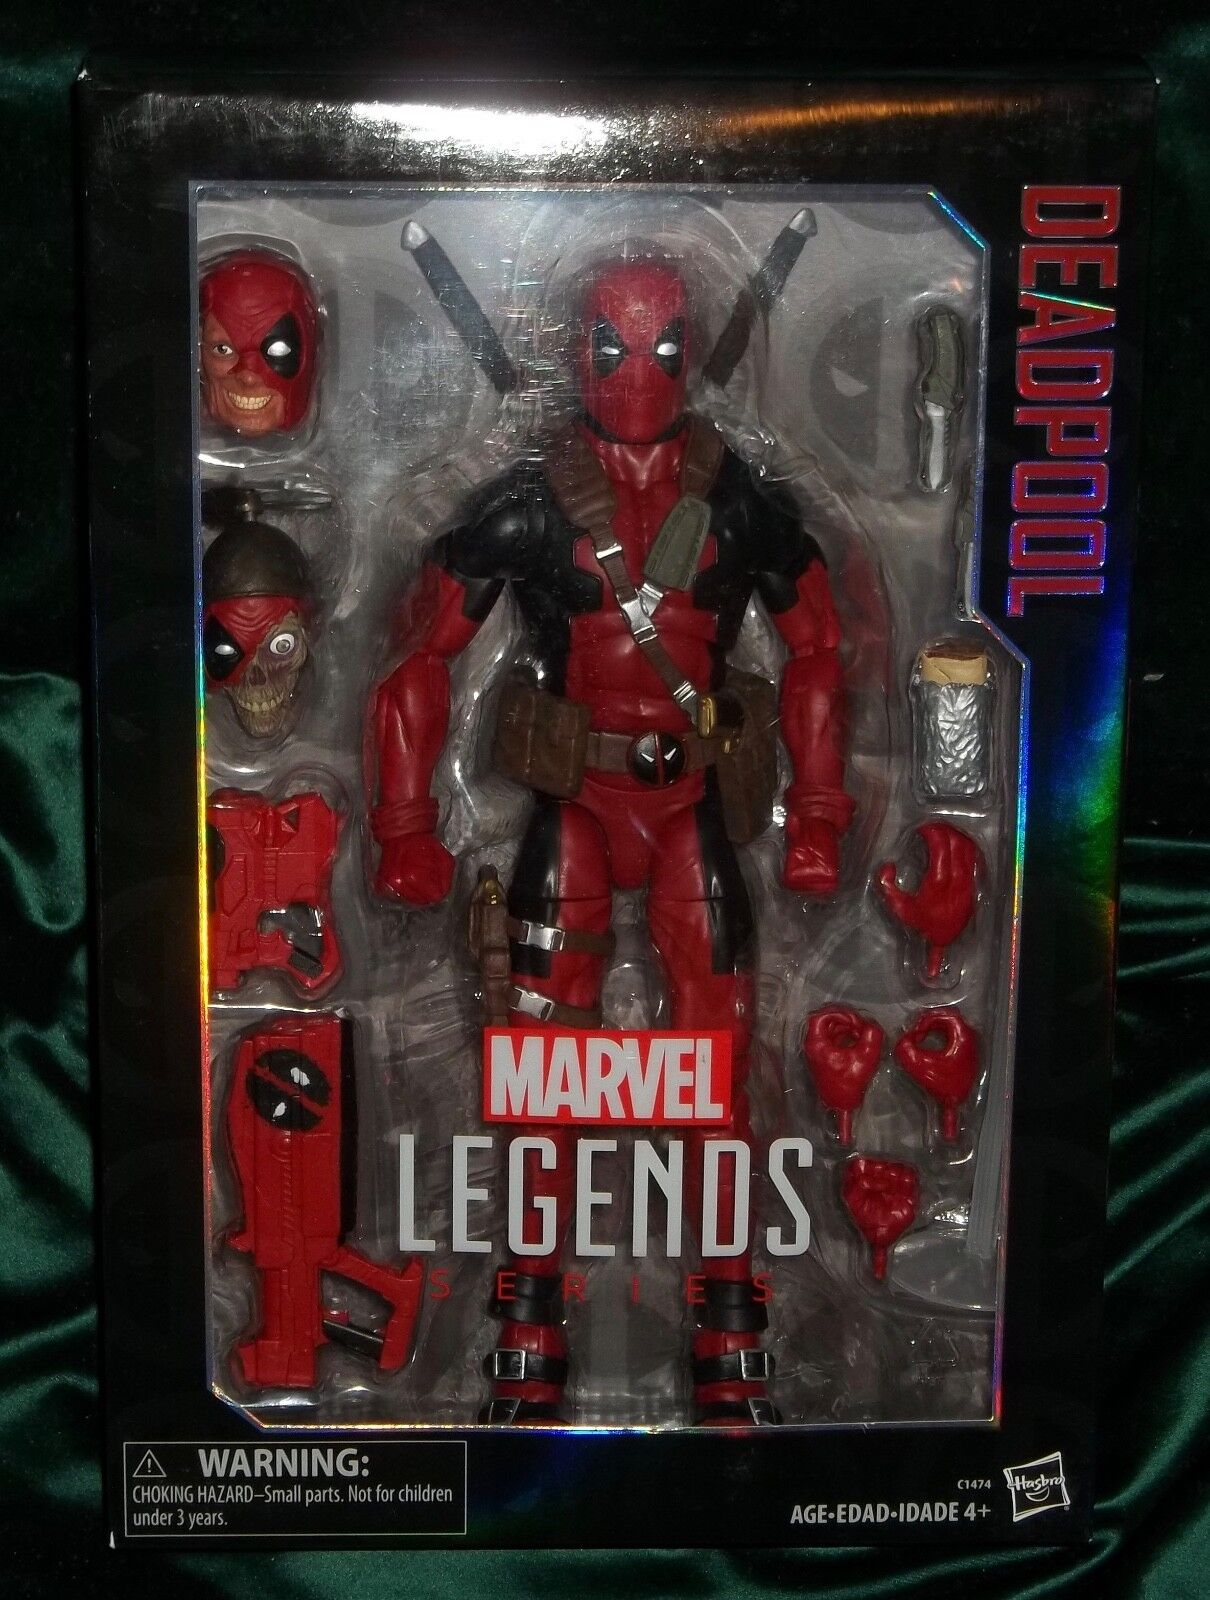 MARVEL LEGENDS X-FORCE SERIES 12 INCH CLASSIC rosso SUIT DEADPOOL FIGURE HASBRO